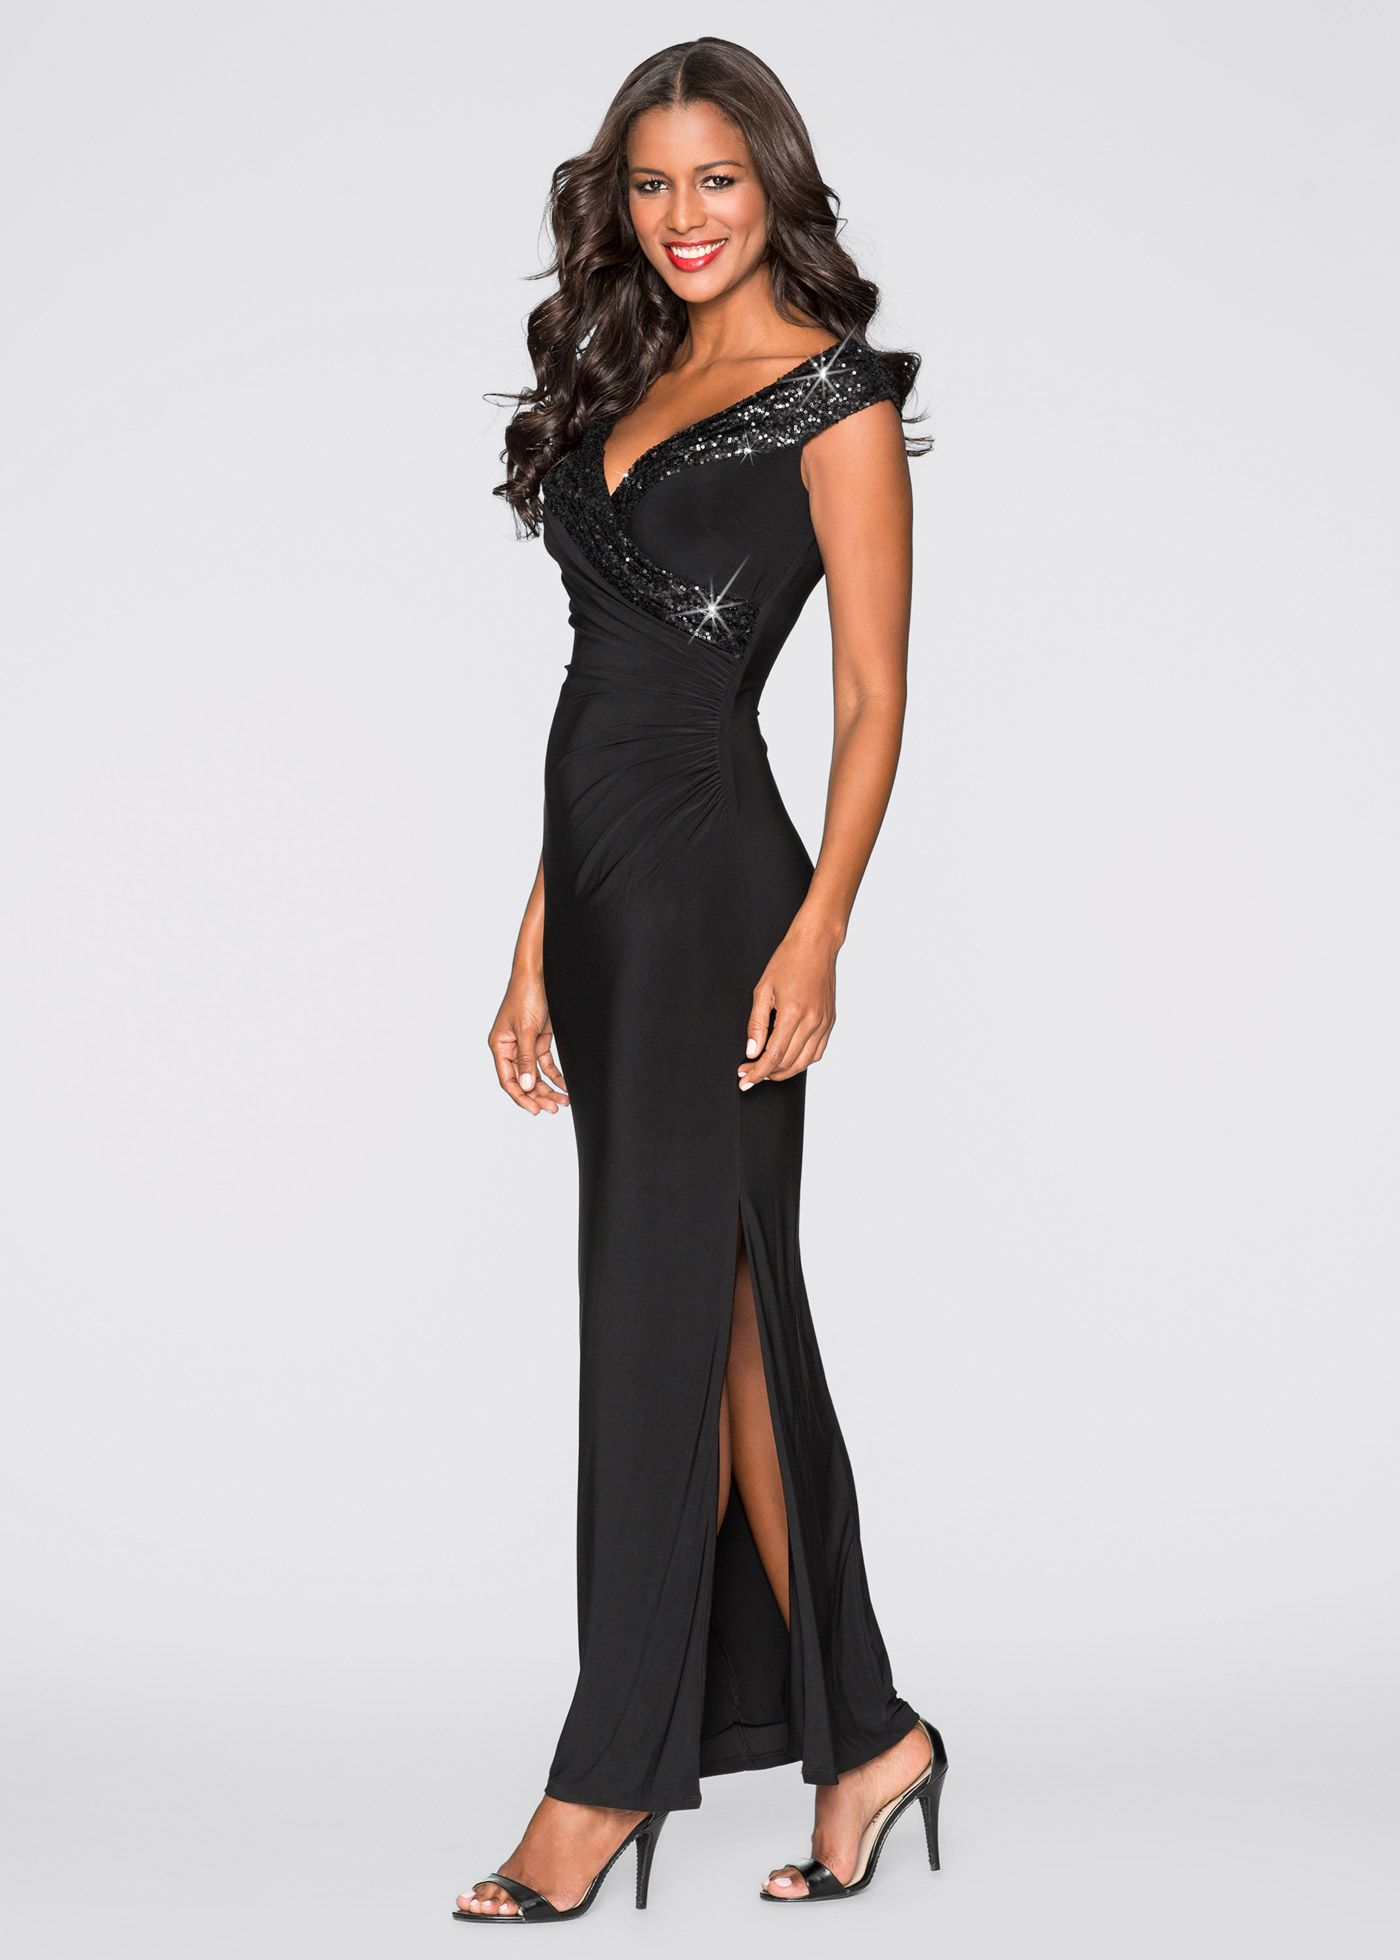 pin auf evening dress